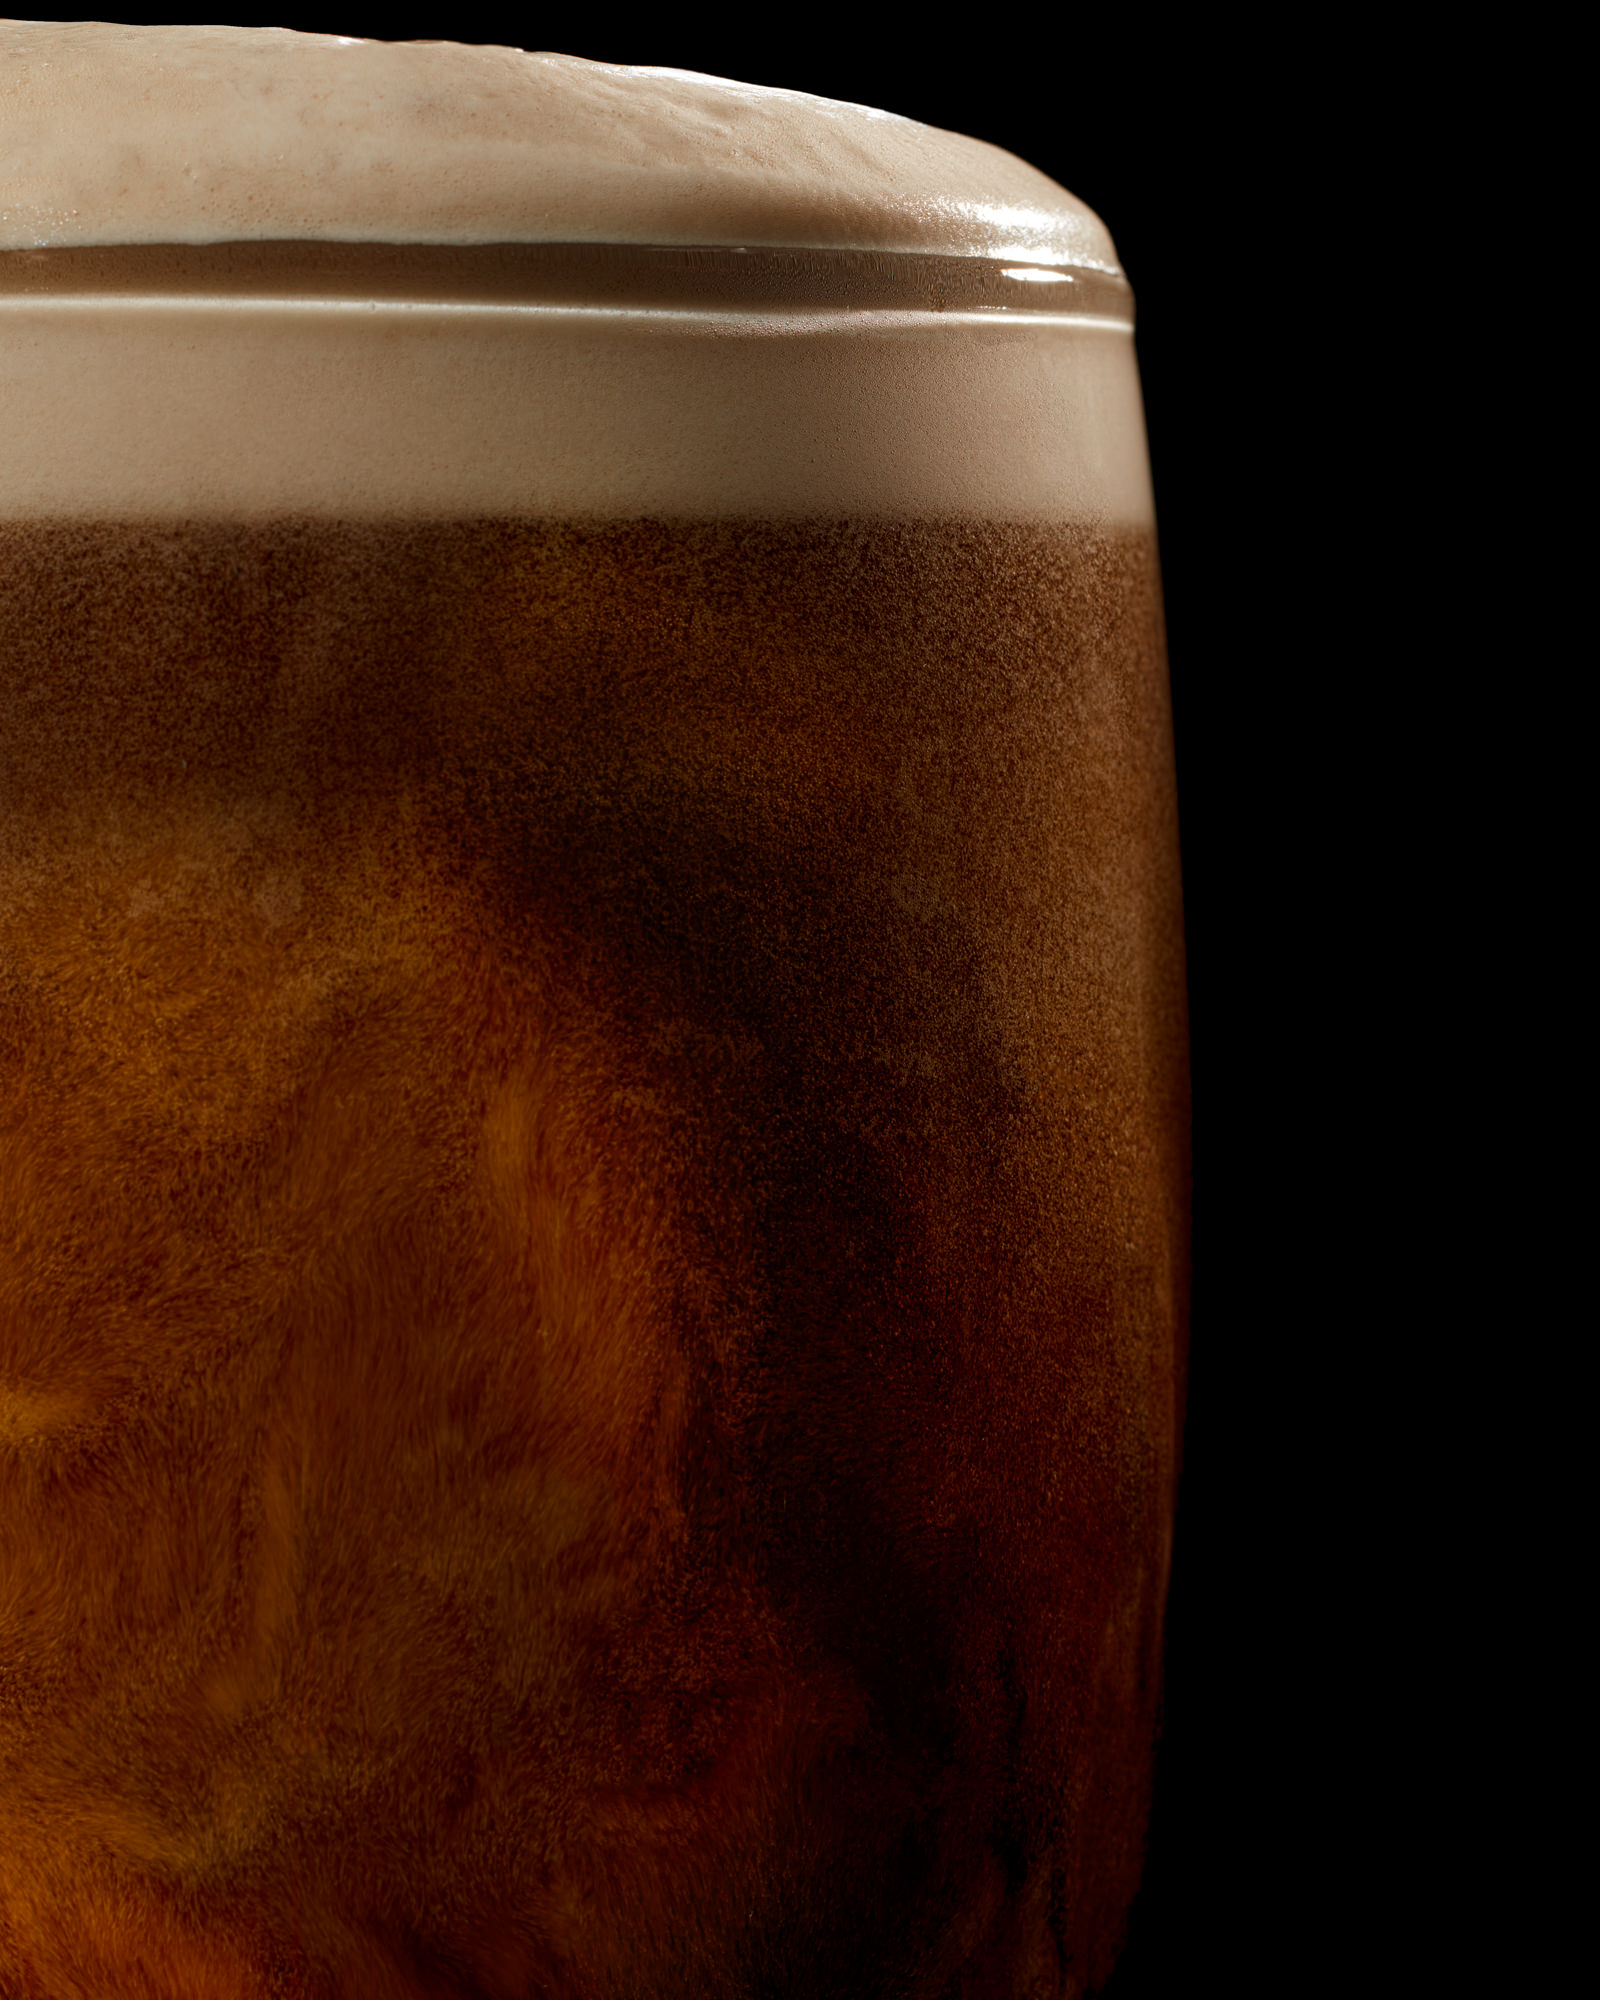 Pint of Guinness settling in a drink photography studio